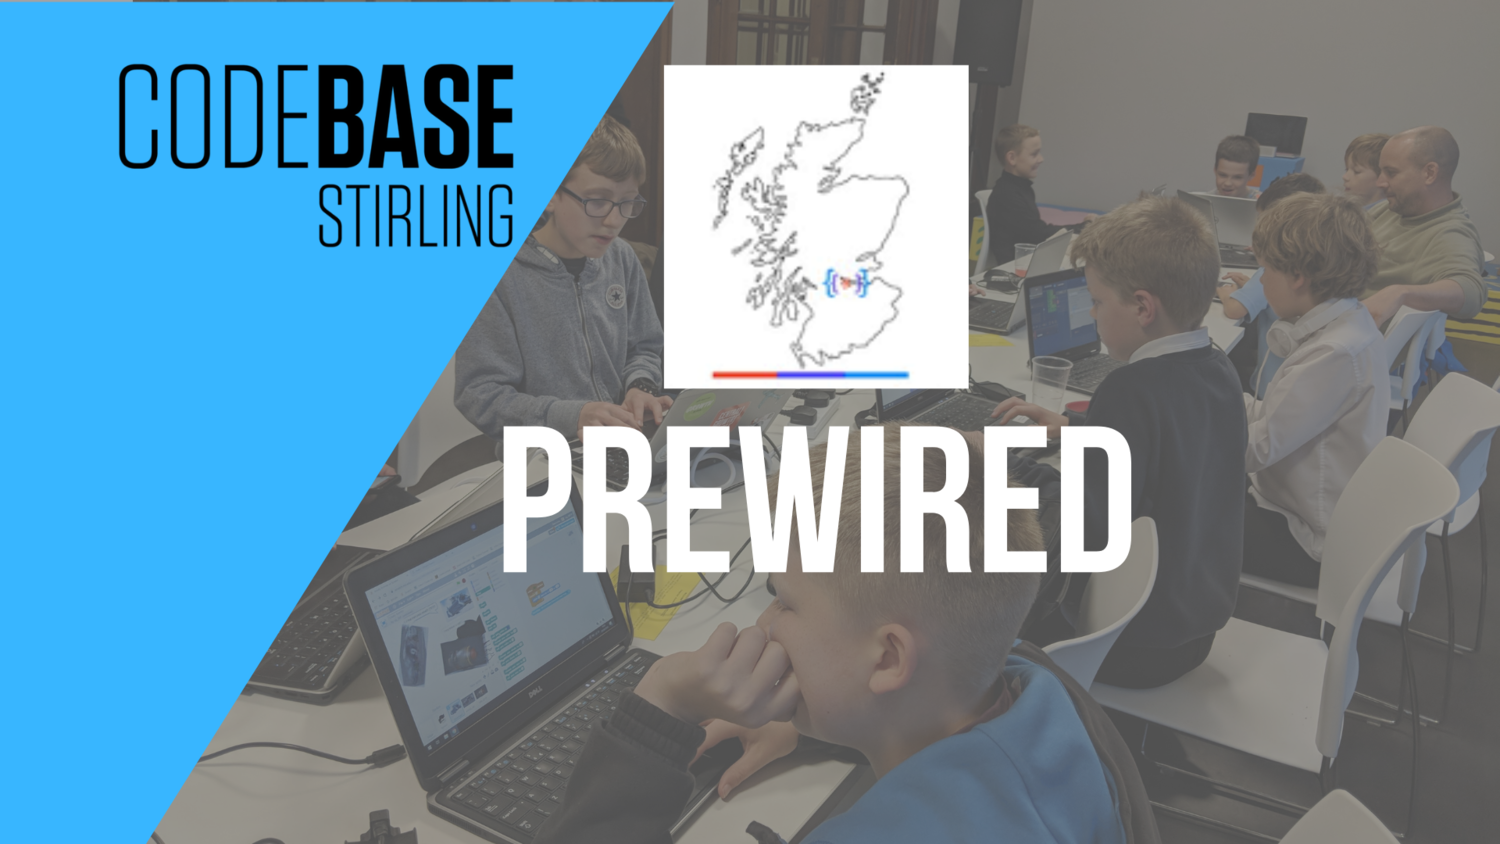 Prewired Stirling Codebase The Uks Largest Technology